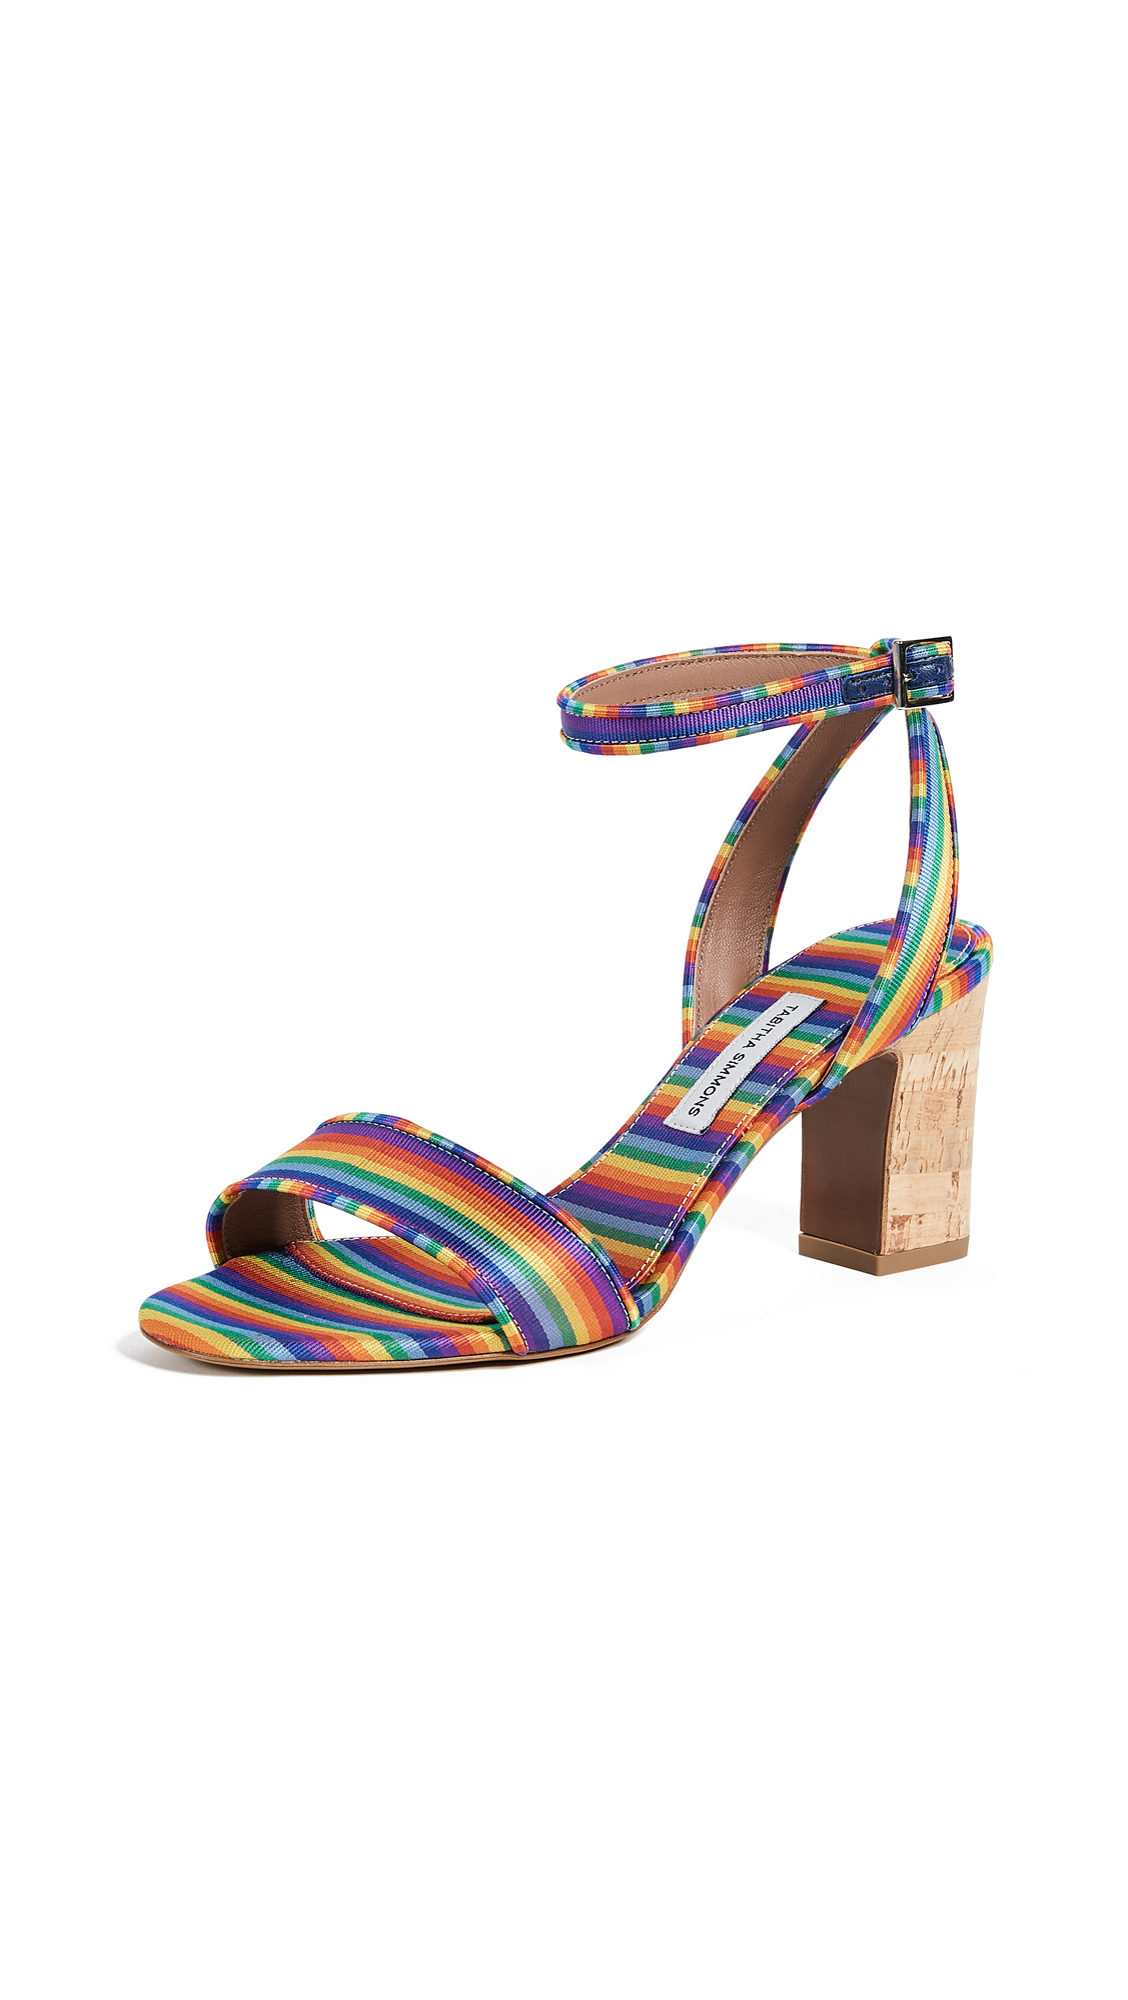 Tabitha Simmons Rainbow Sandal Pumps - Rainbow